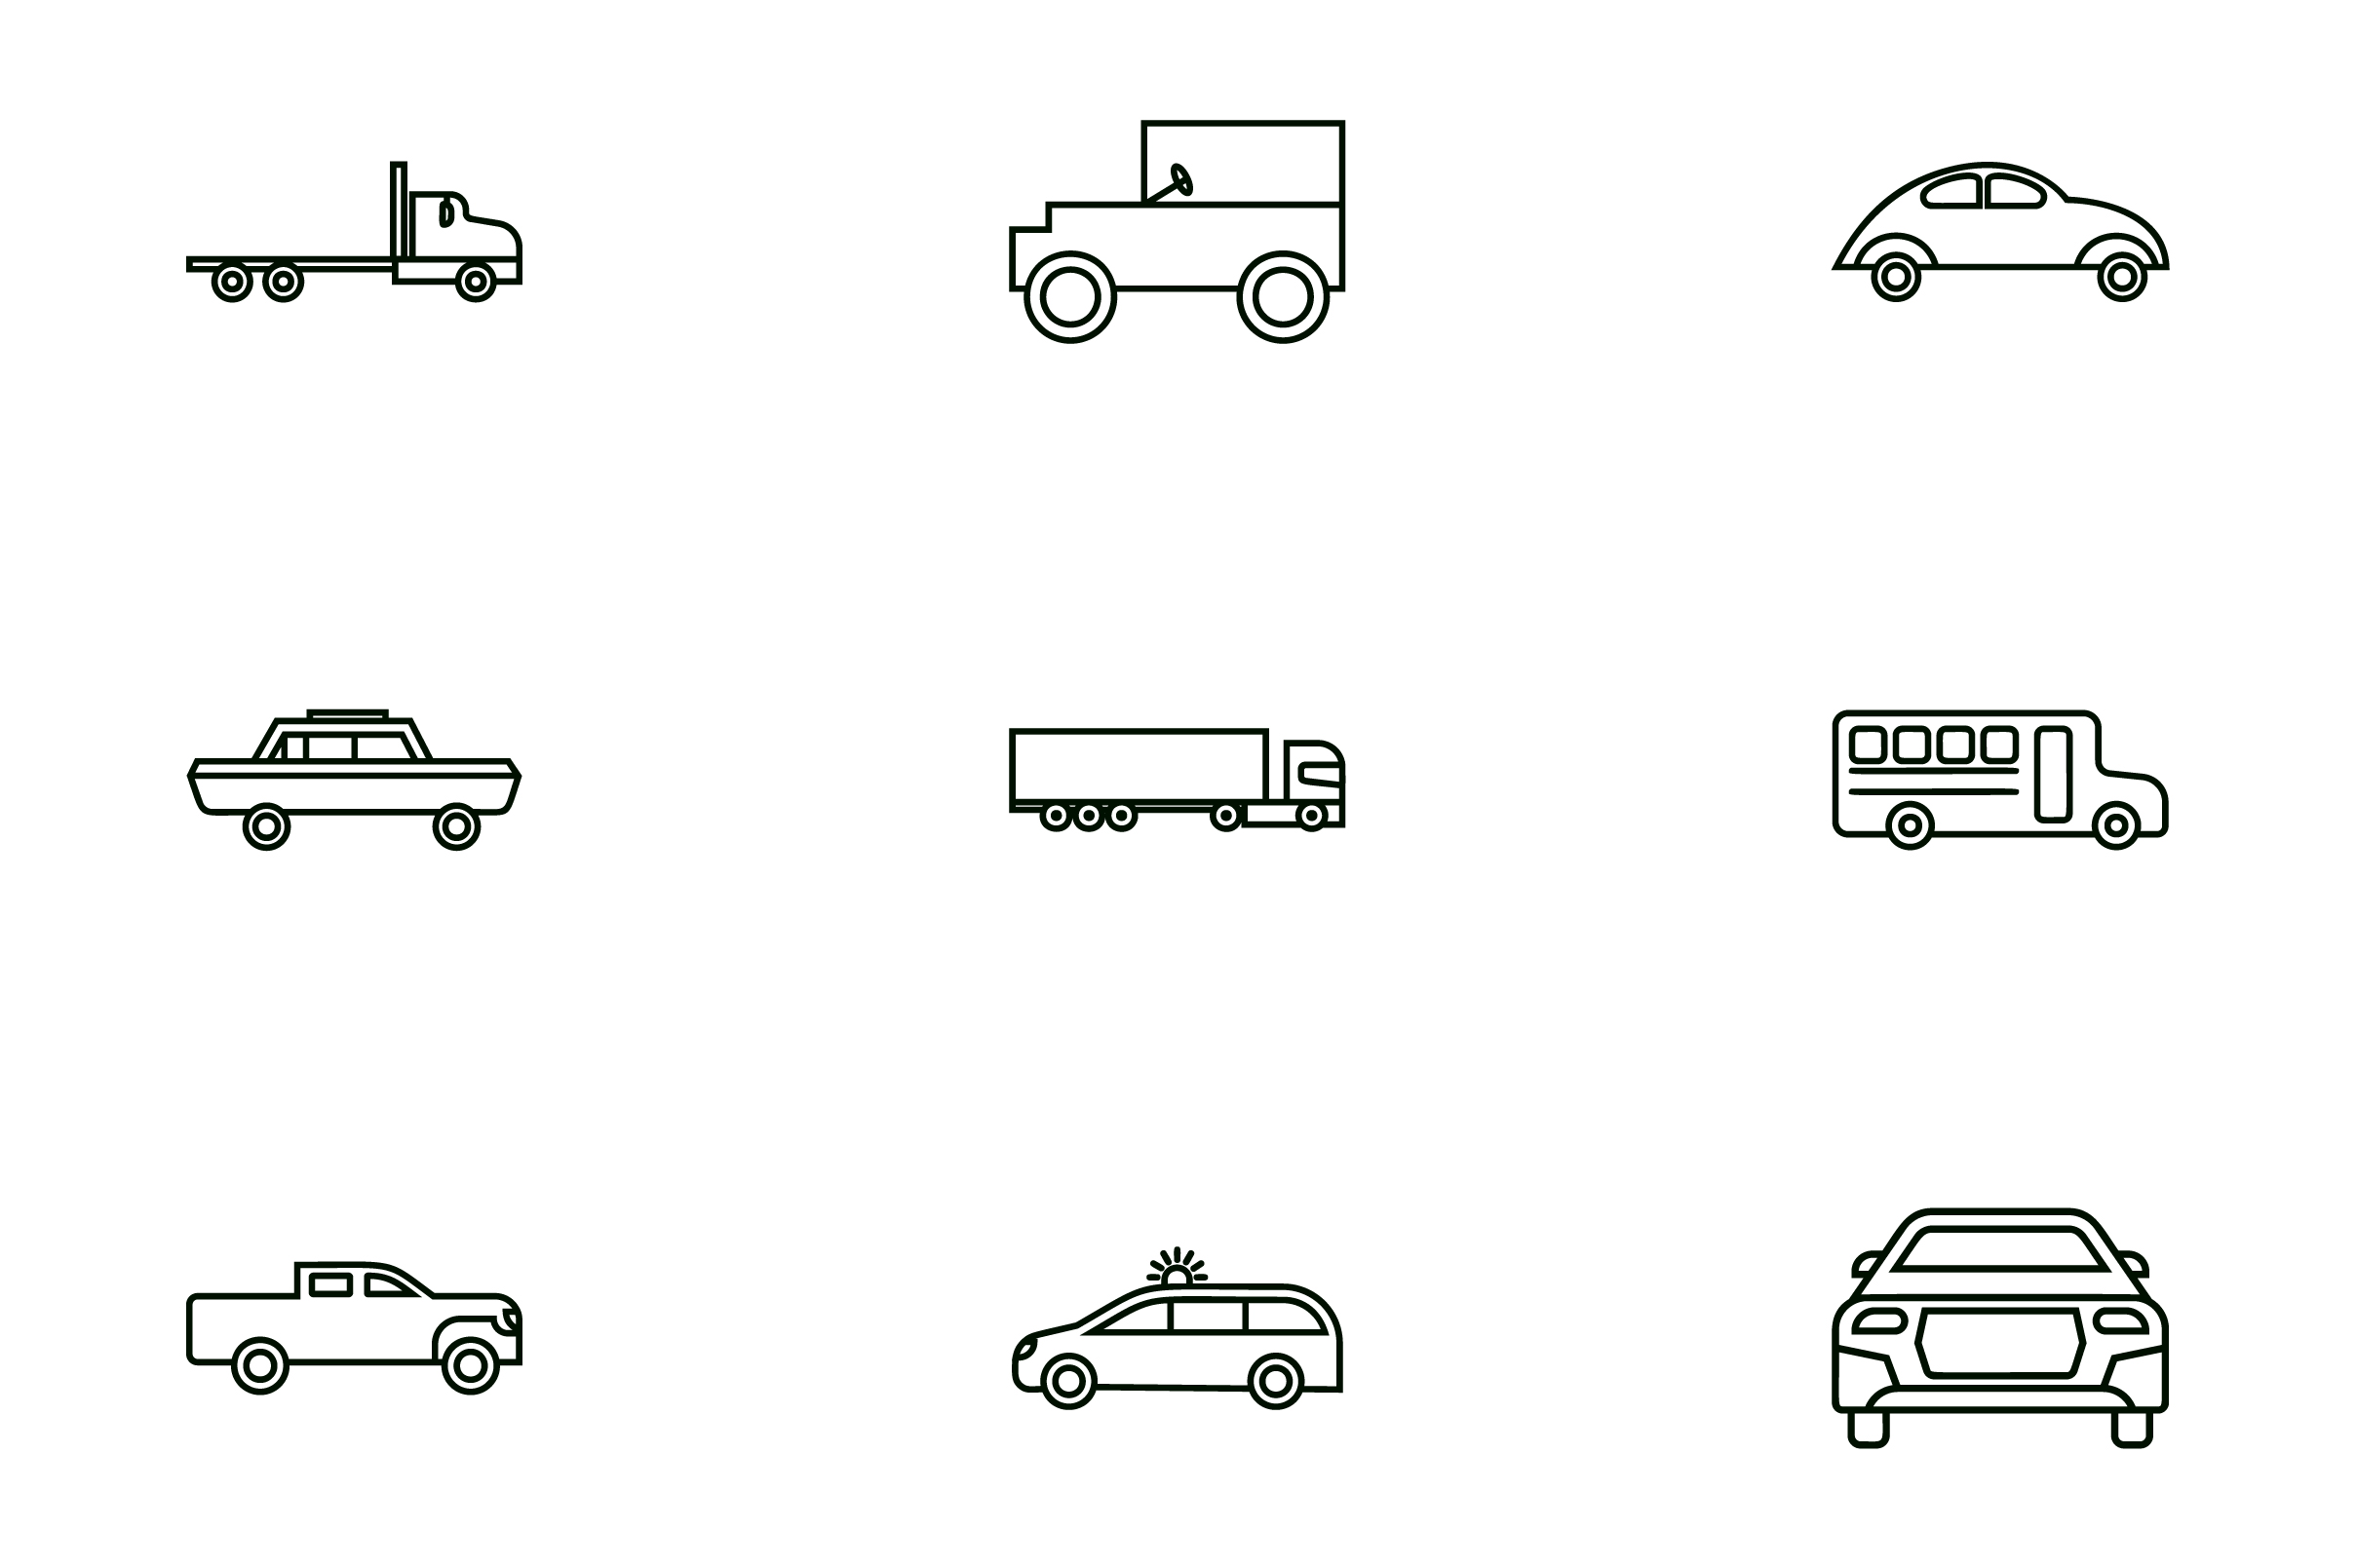 Download Free Vehicle Line Art Icon Set Vector Graphic By Riduwan Molla for Cricut Explore, Silhouette and other cutting machines.